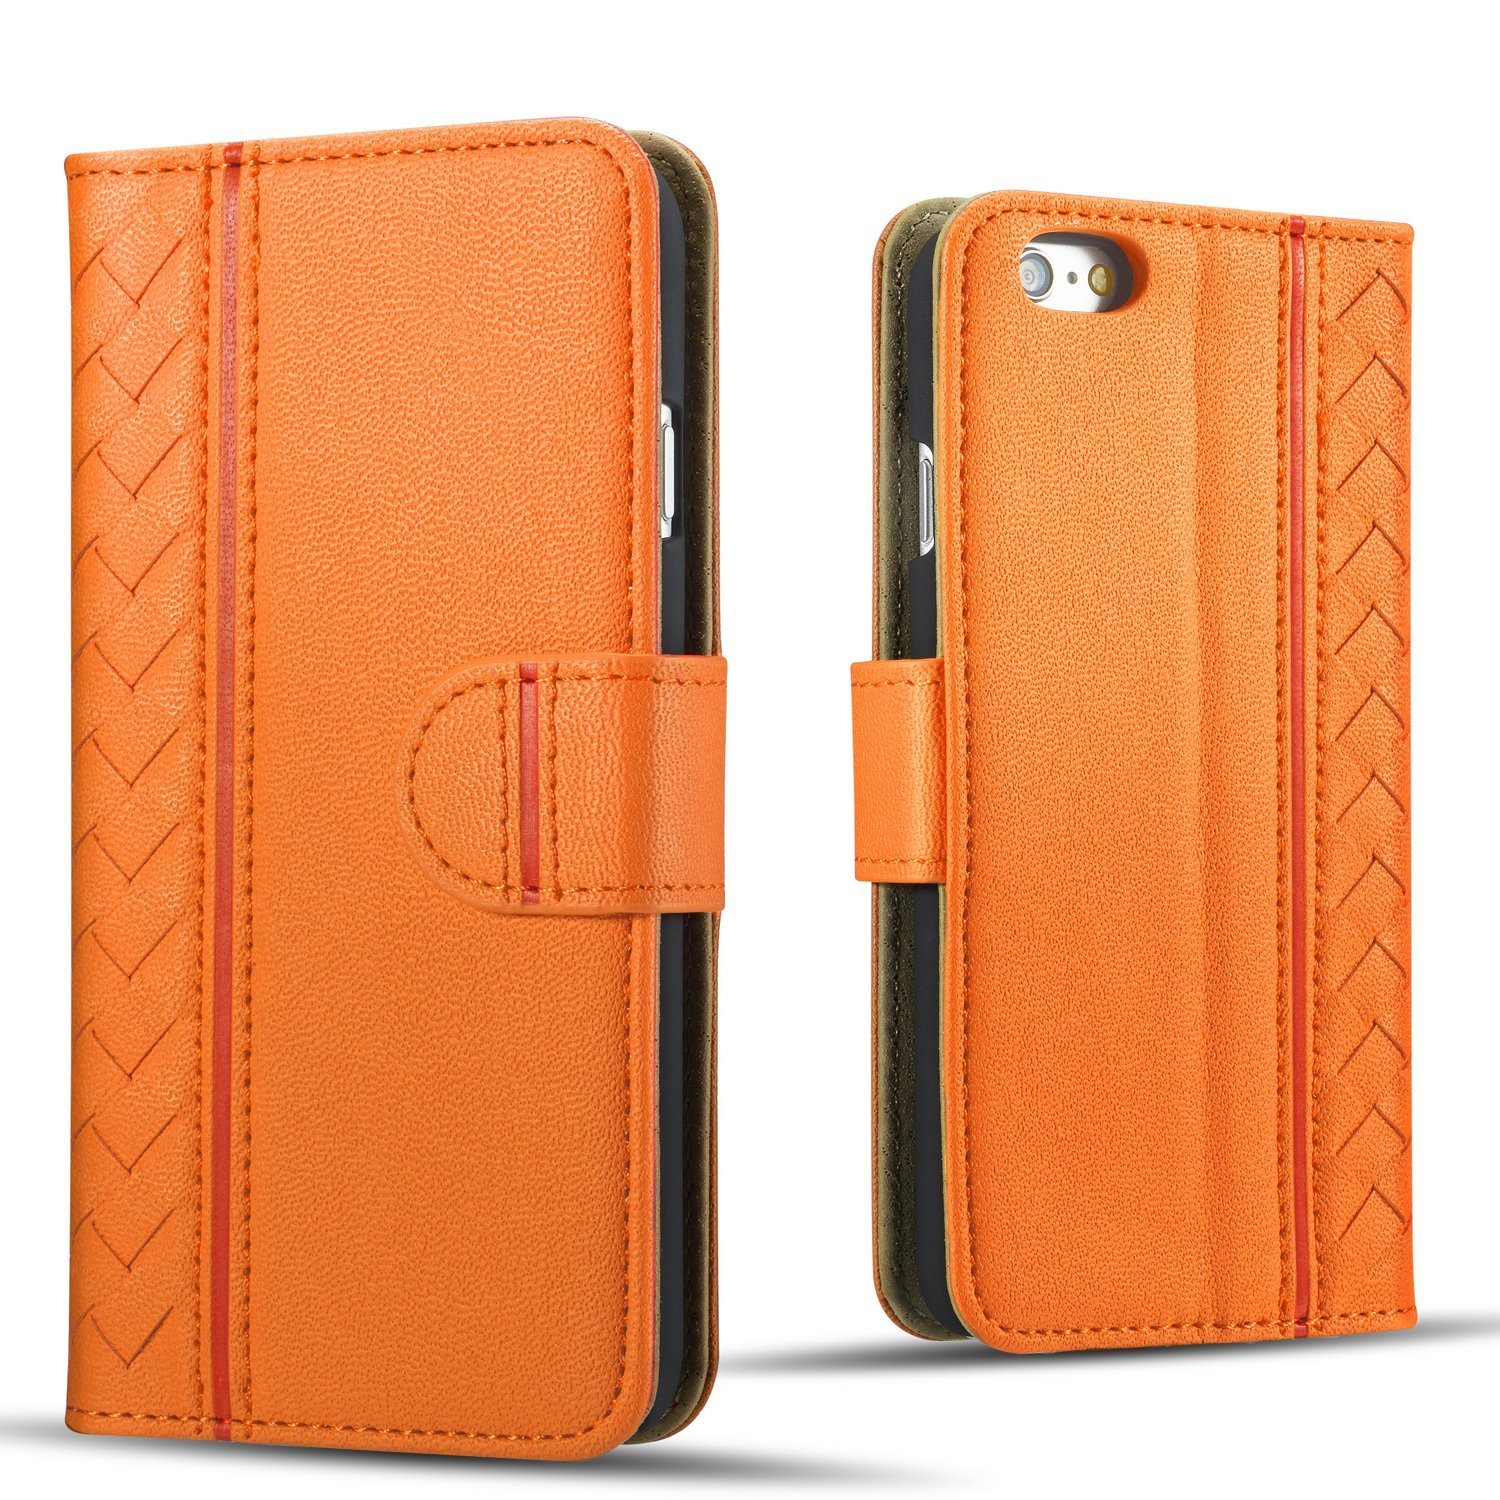 iPhone 6 Case,iPhone 6s Case,Drool[Woven Pattern Series]Luxurious PU Leather Wallet Case,Flip Phone Case Cover with Card Holder&Stand for iPhone6/6s(iphone 6/6s orange)